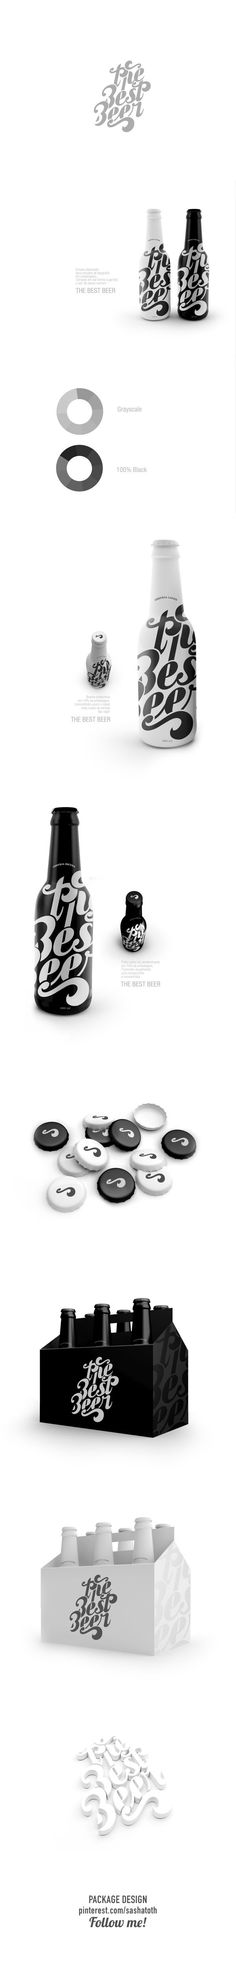 The Best Beer Lettering and Packaging (concept) by Renan Vizzotto, via Behance #beer #beerpackaging